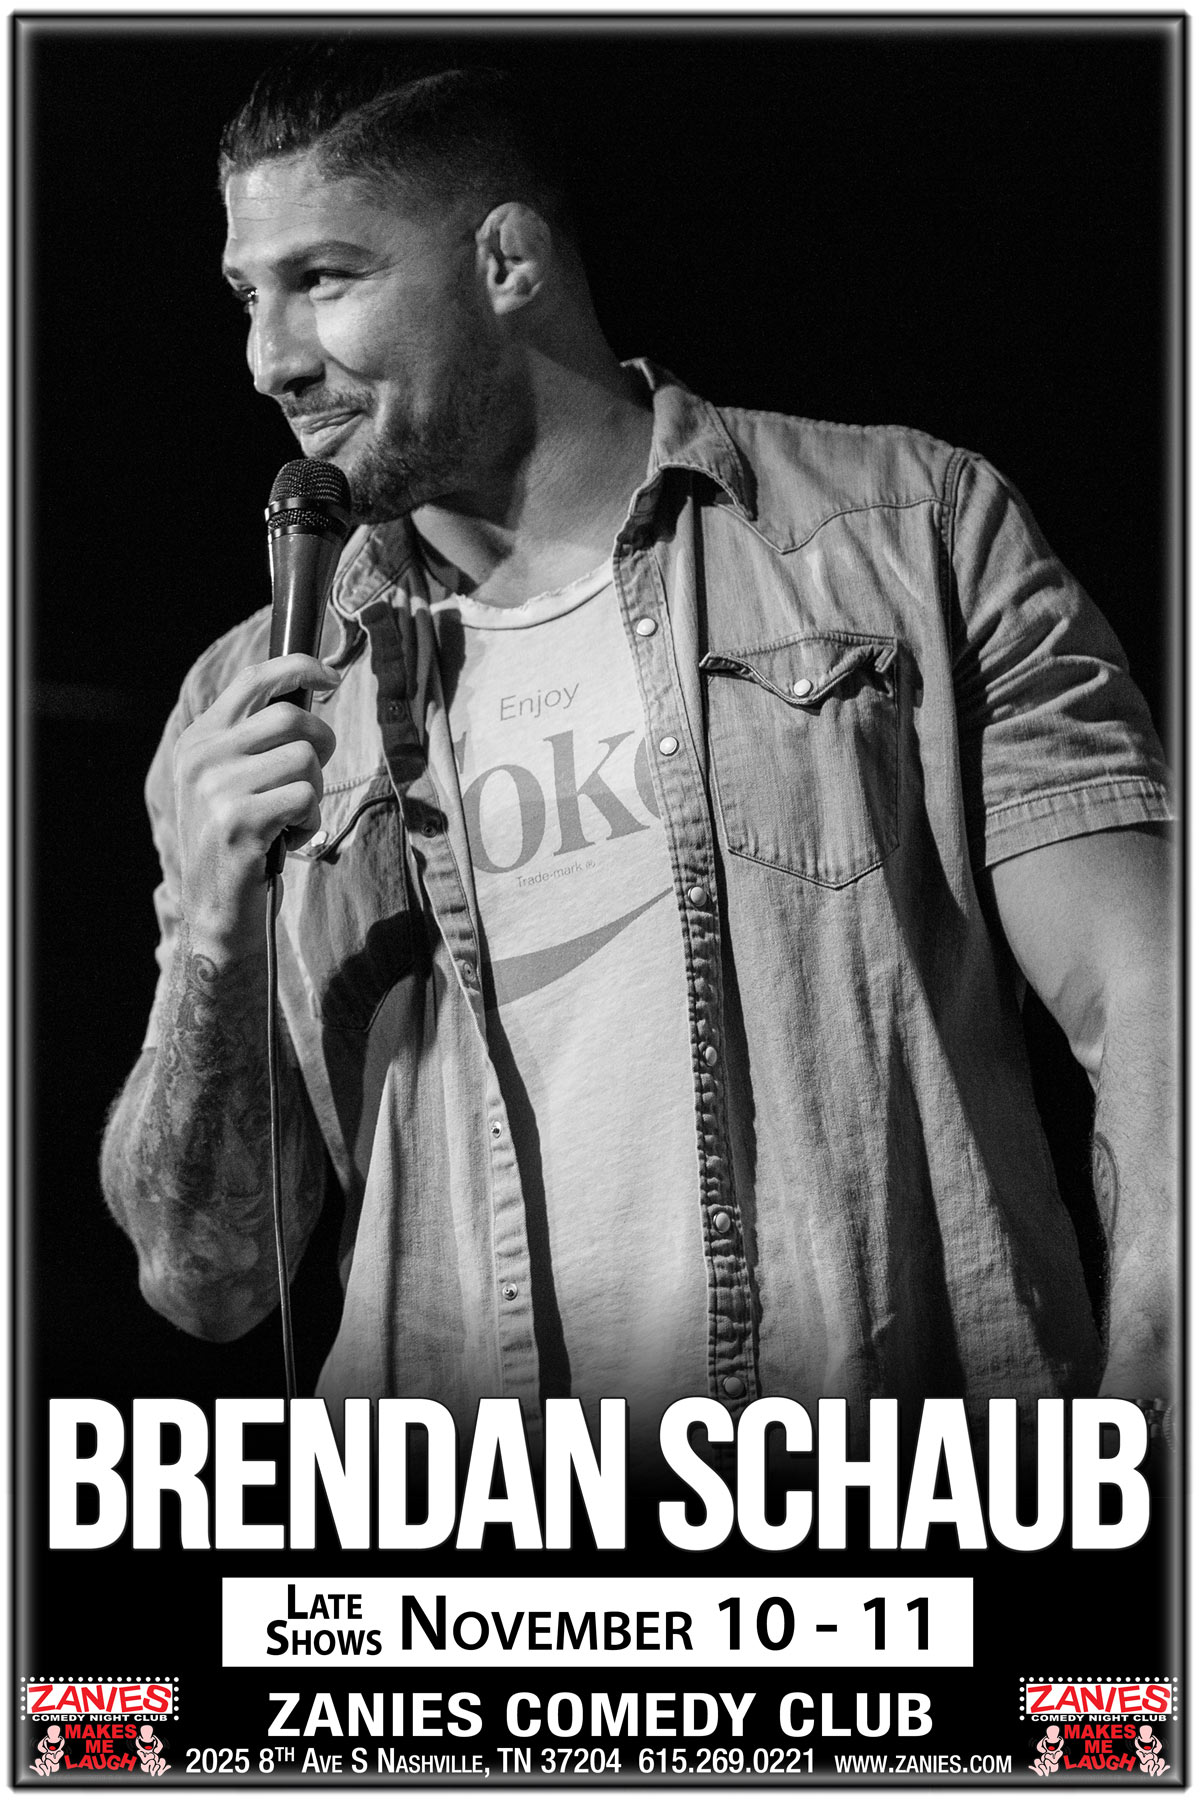 Brendan Schaub from Fighter & The Kid Podcast at Zanies Comedy Club Nashville Late Shows November 10-11, 2017